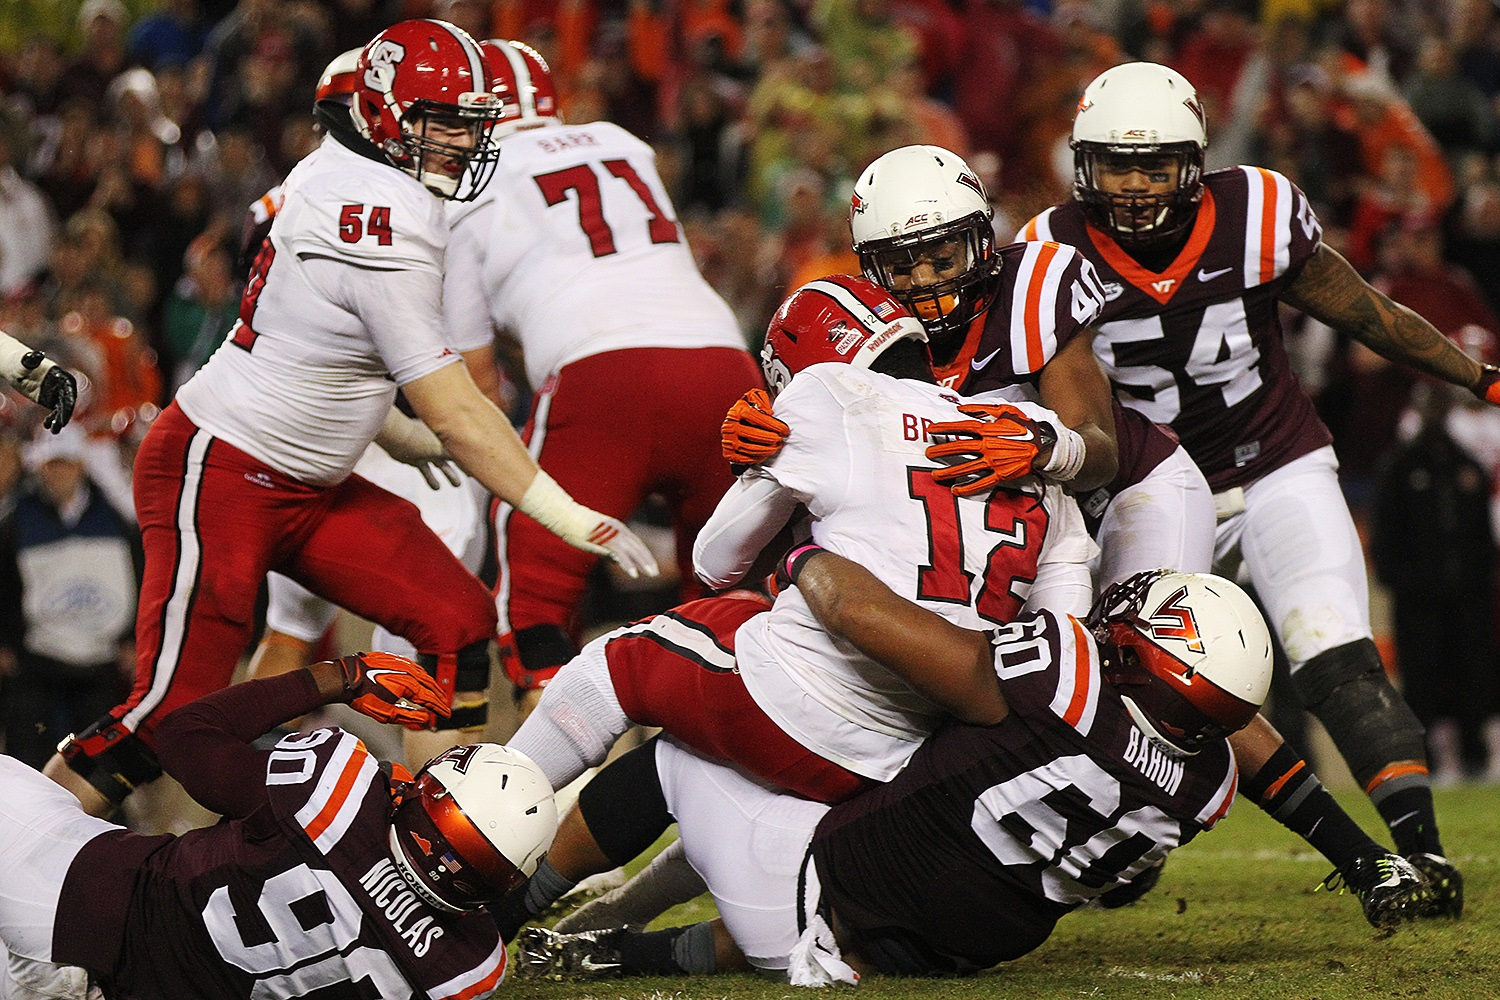 Woody Baron (#60) and the Hokies got after Jacoby Brissett, sacking him four times.